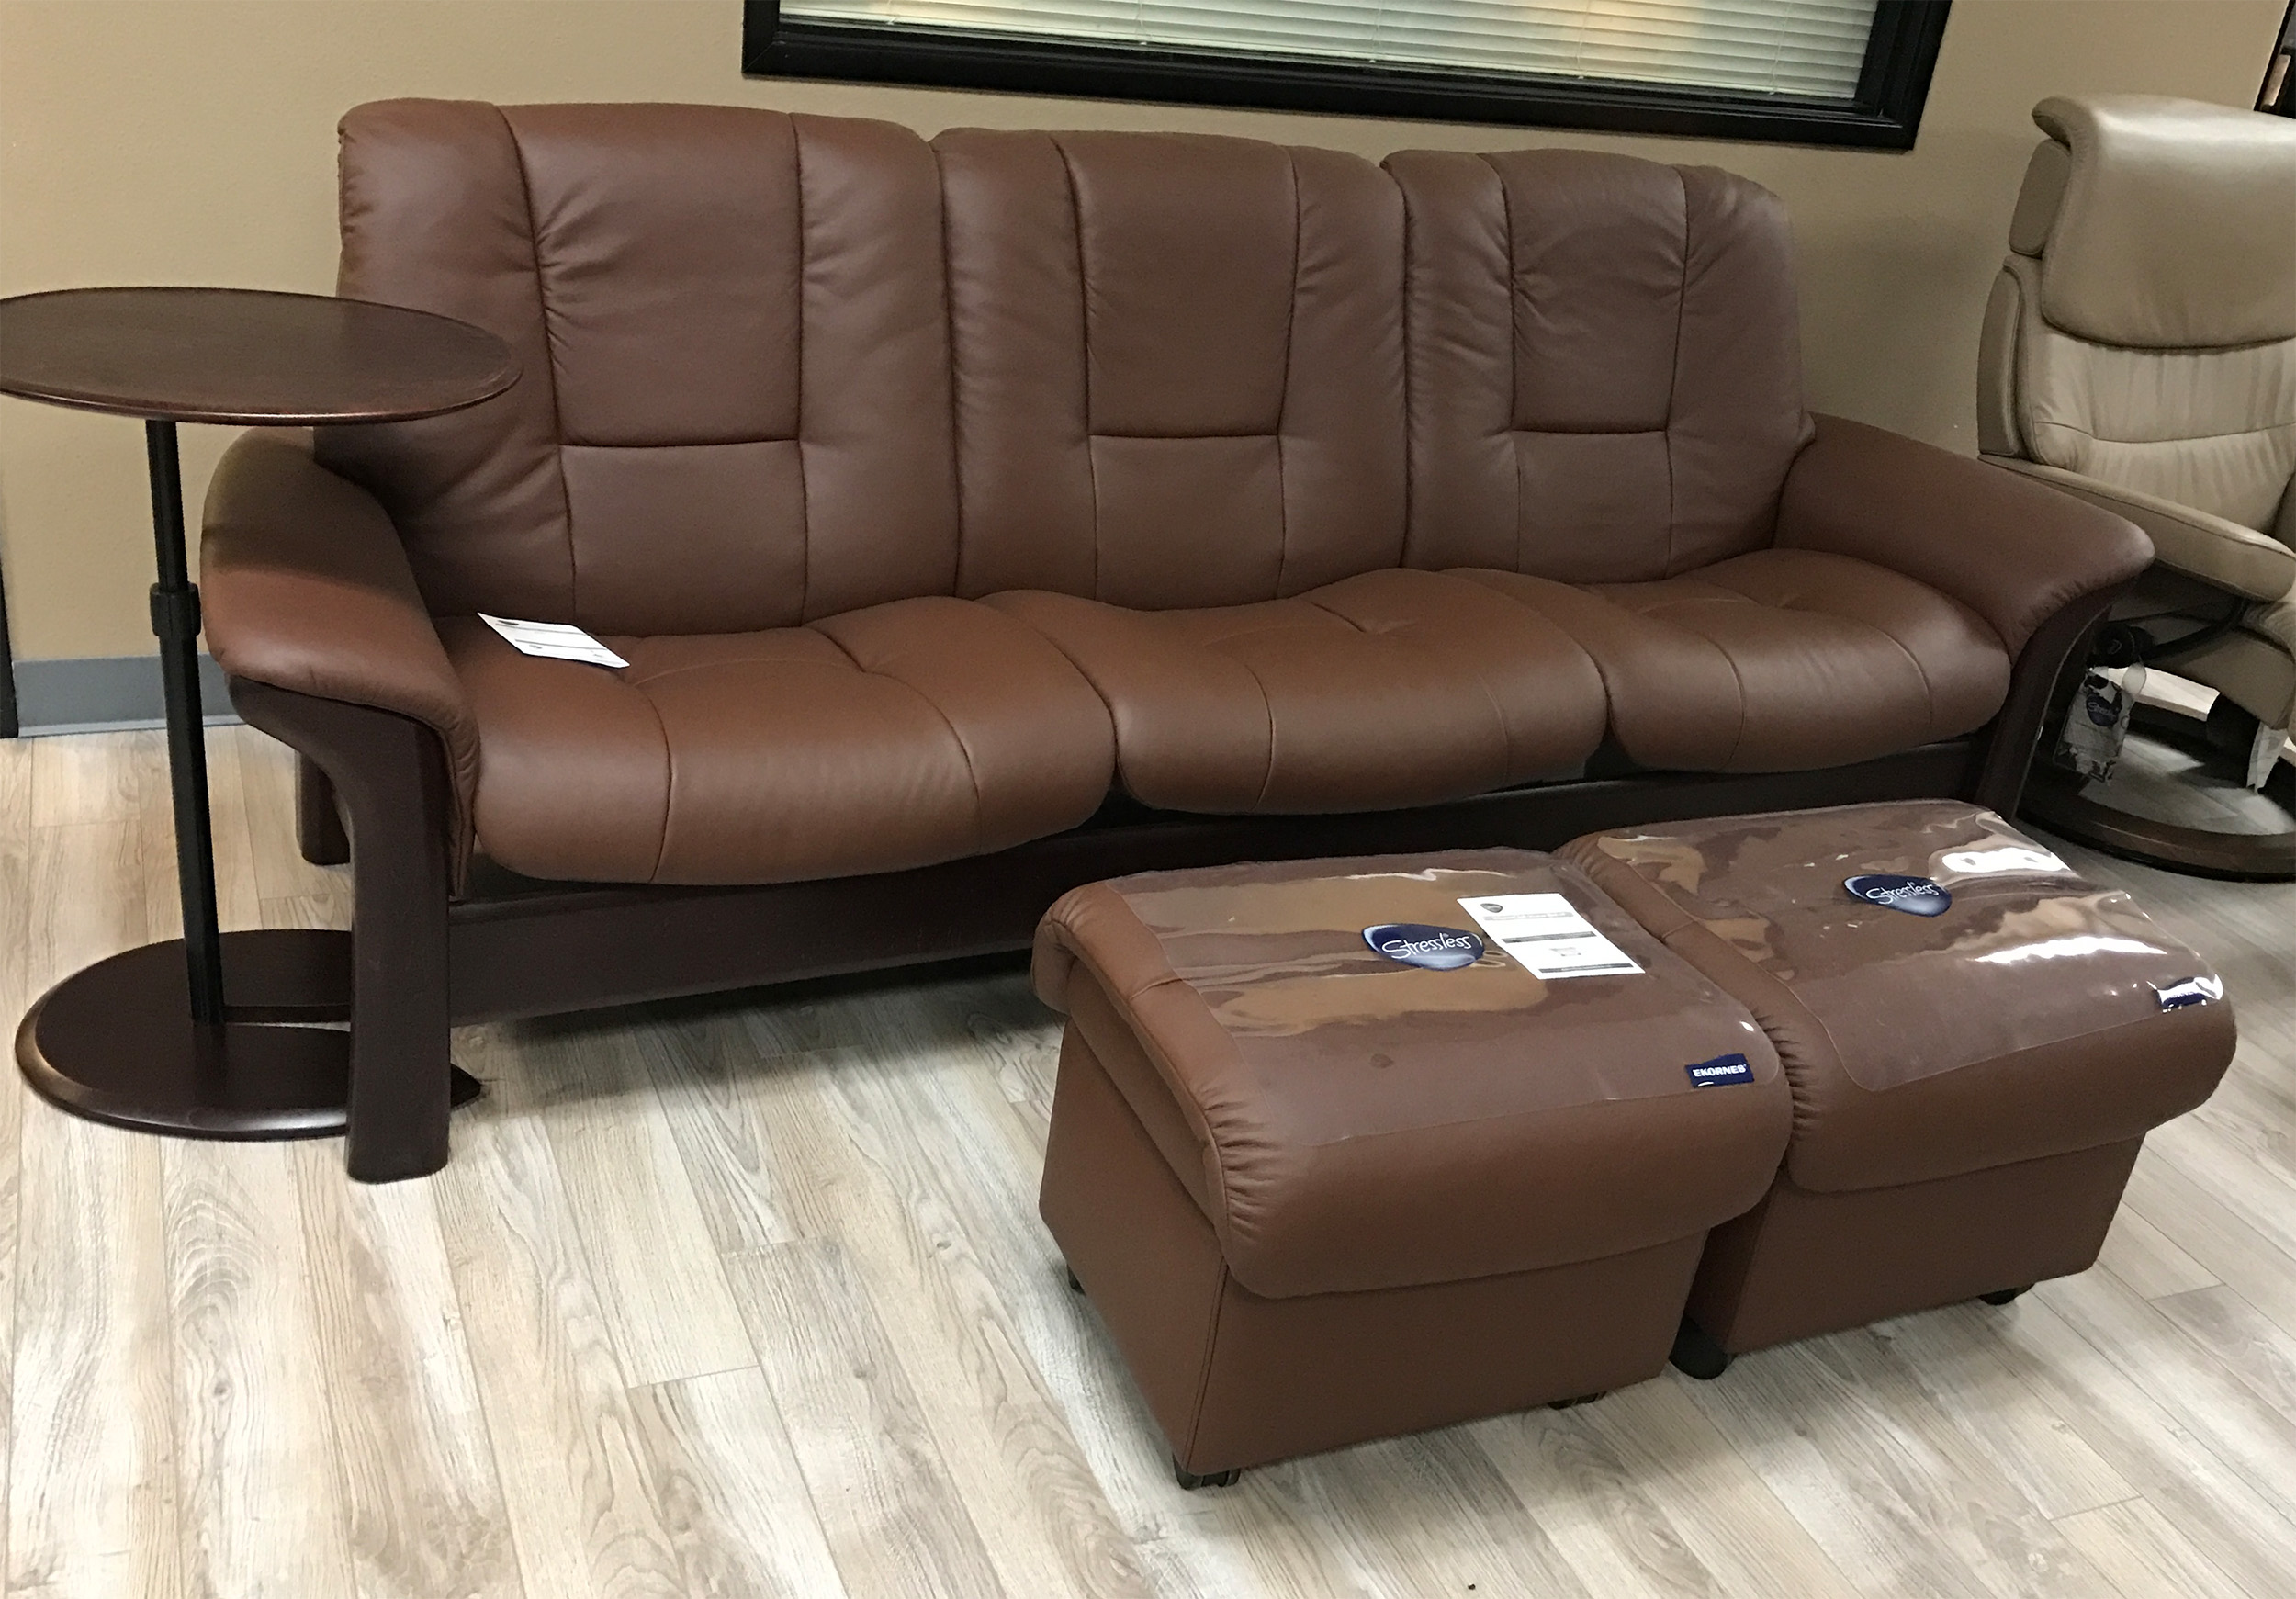 Phenomenal Stressless Buckingham 3 Seat Low Back Sofa Paloma Brown Leather By Ekornes Onthecornerstone Fun Painted Chair Ideas Images Onthecornerstoneorg